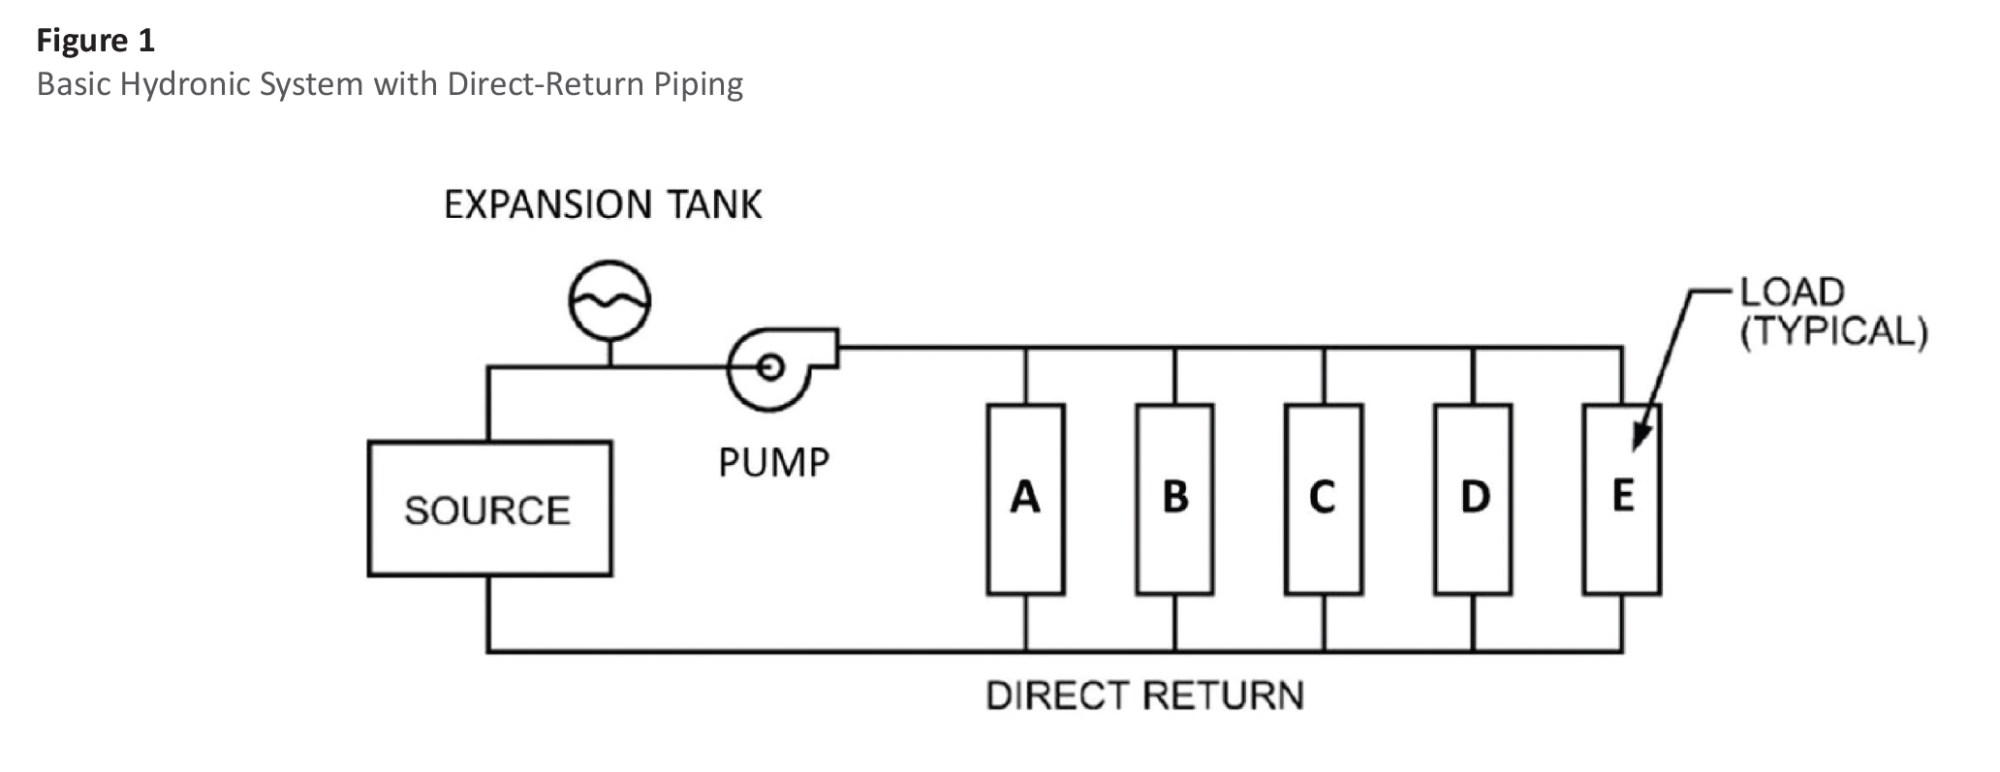 hight resolution of  system pressure although the expansion tank is not directly in the flow path it is typically insulated to the same level as the piping to minimize